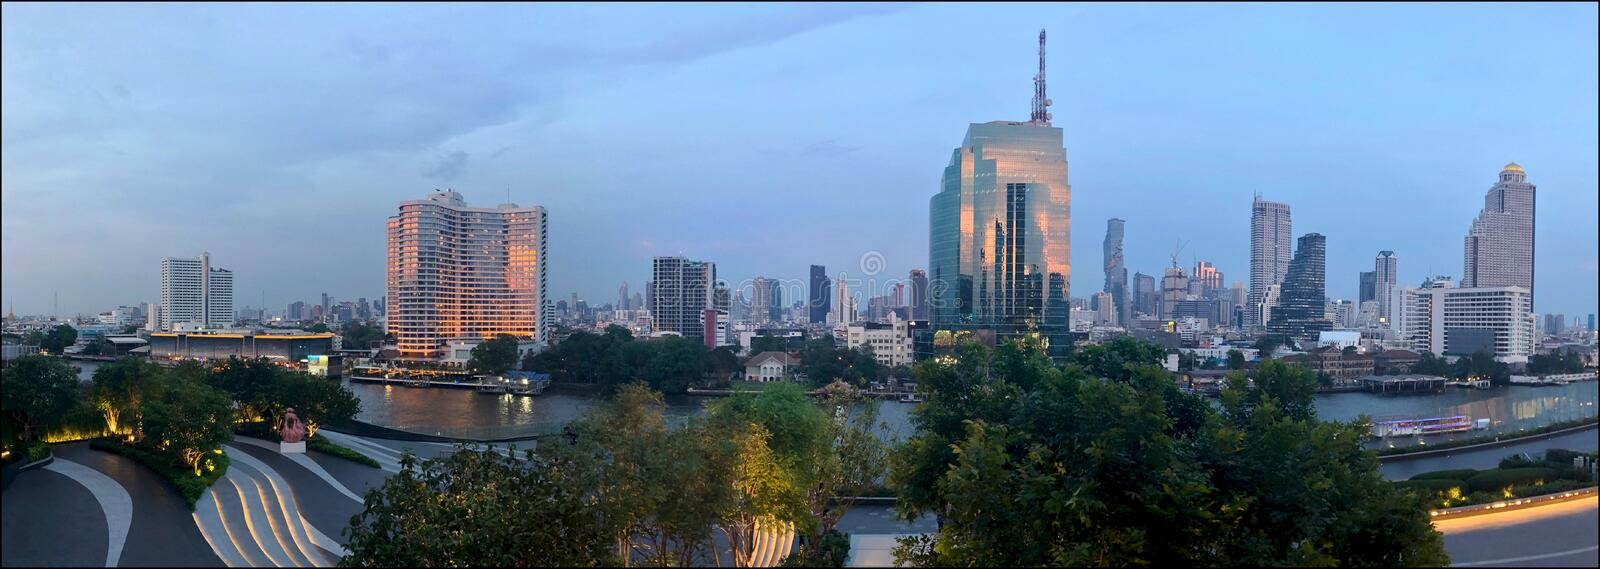 Panoramic view of evening Bangkok, sunset reflected in the windows of skyscrapers along the Chao Phraya River stock images